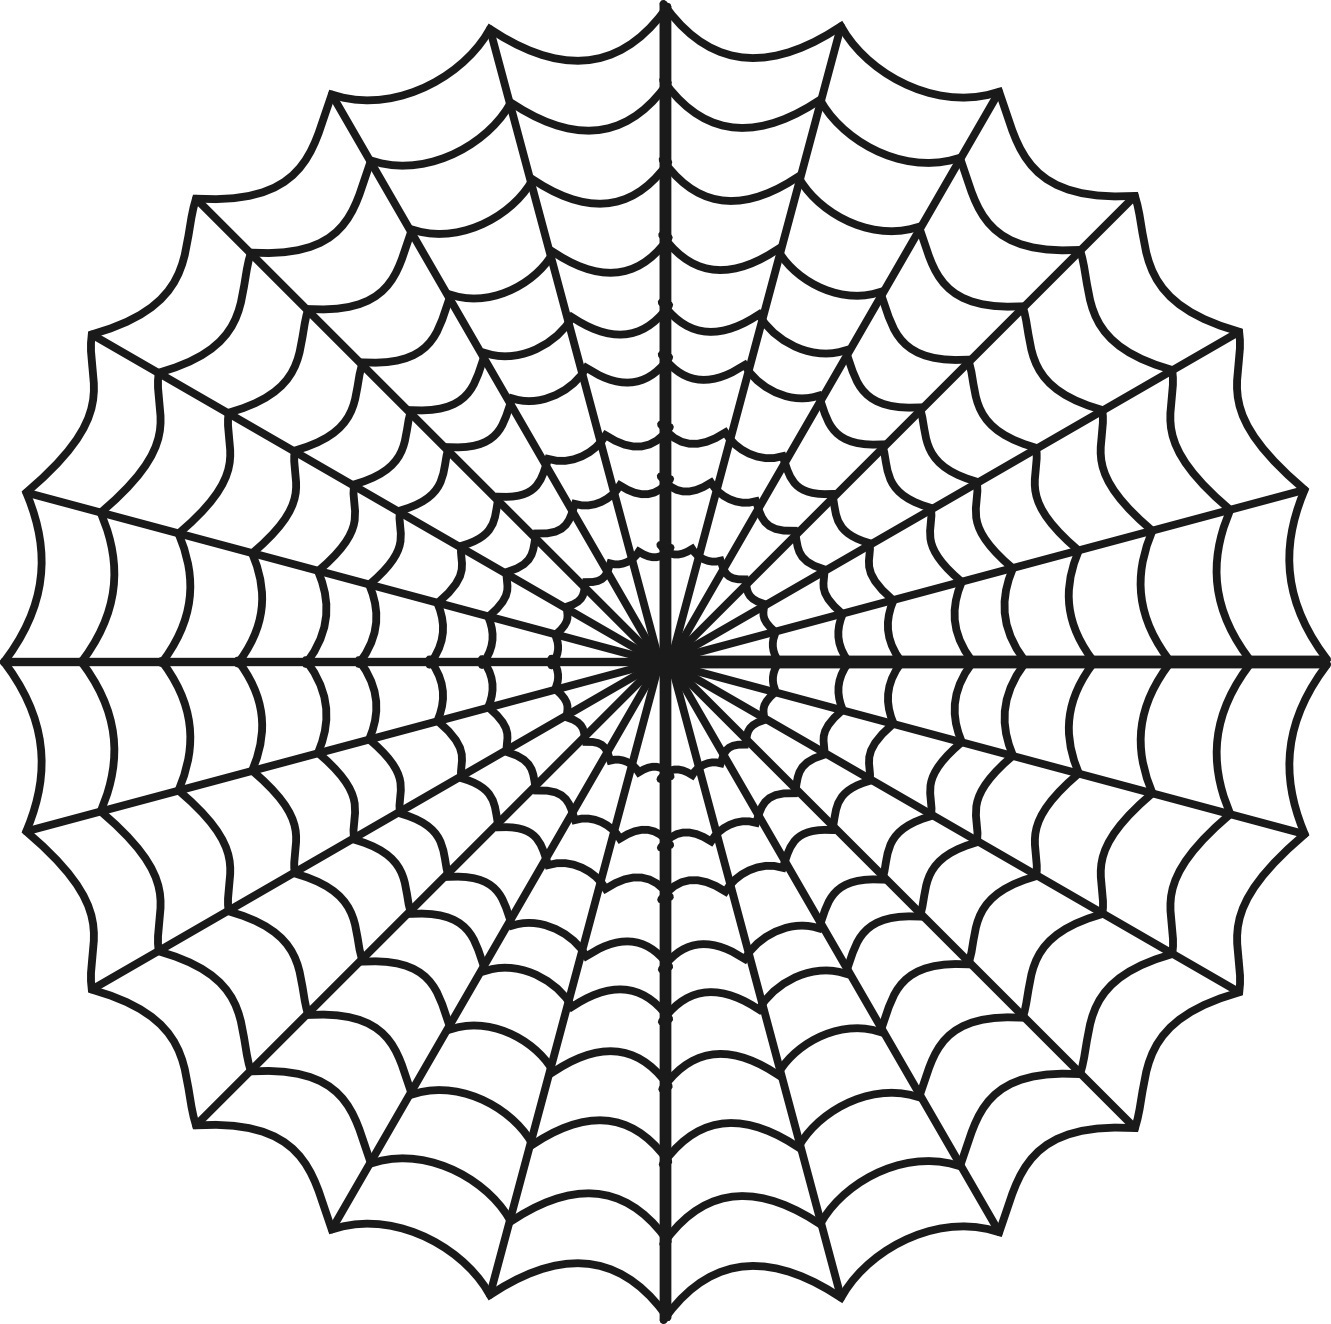 Free Printable Spider Web Coloring Pages For Kids Spider Web Coloring Page